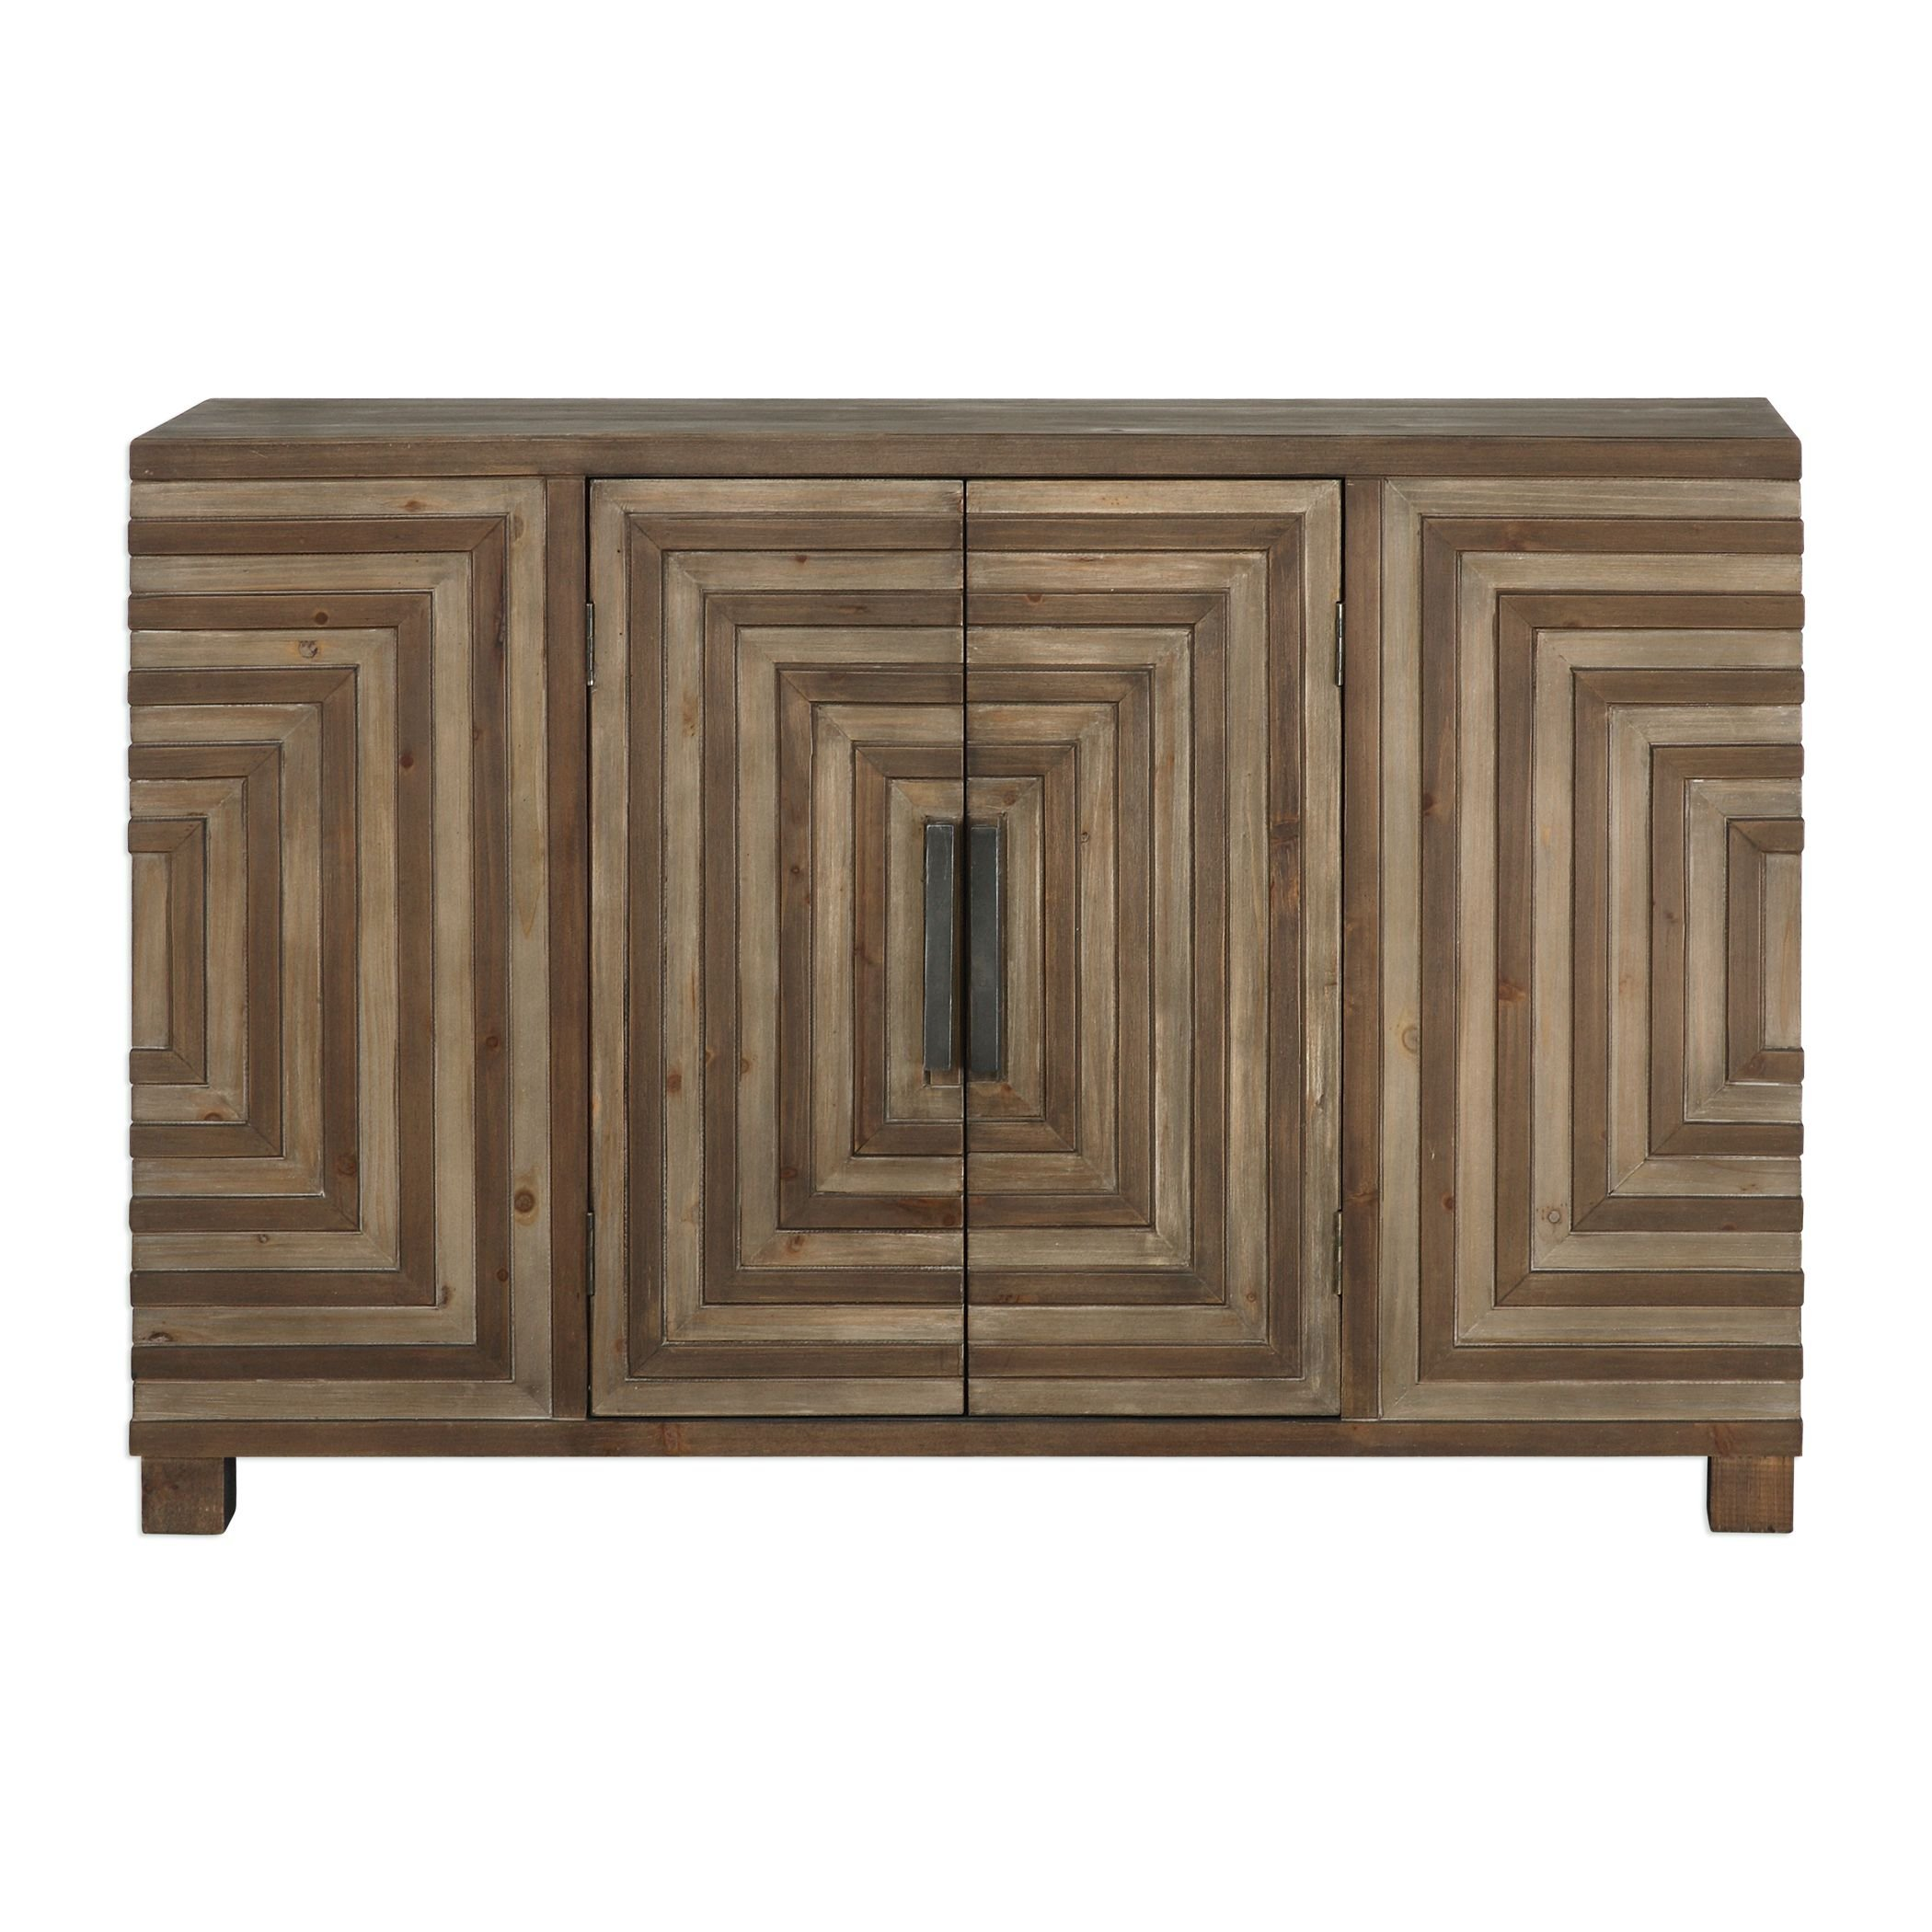 MY SWANKY HOME Mid Century Modern Pieced Wood Console Cabinet | Geometric Table Squares by MY SWANKY HOME